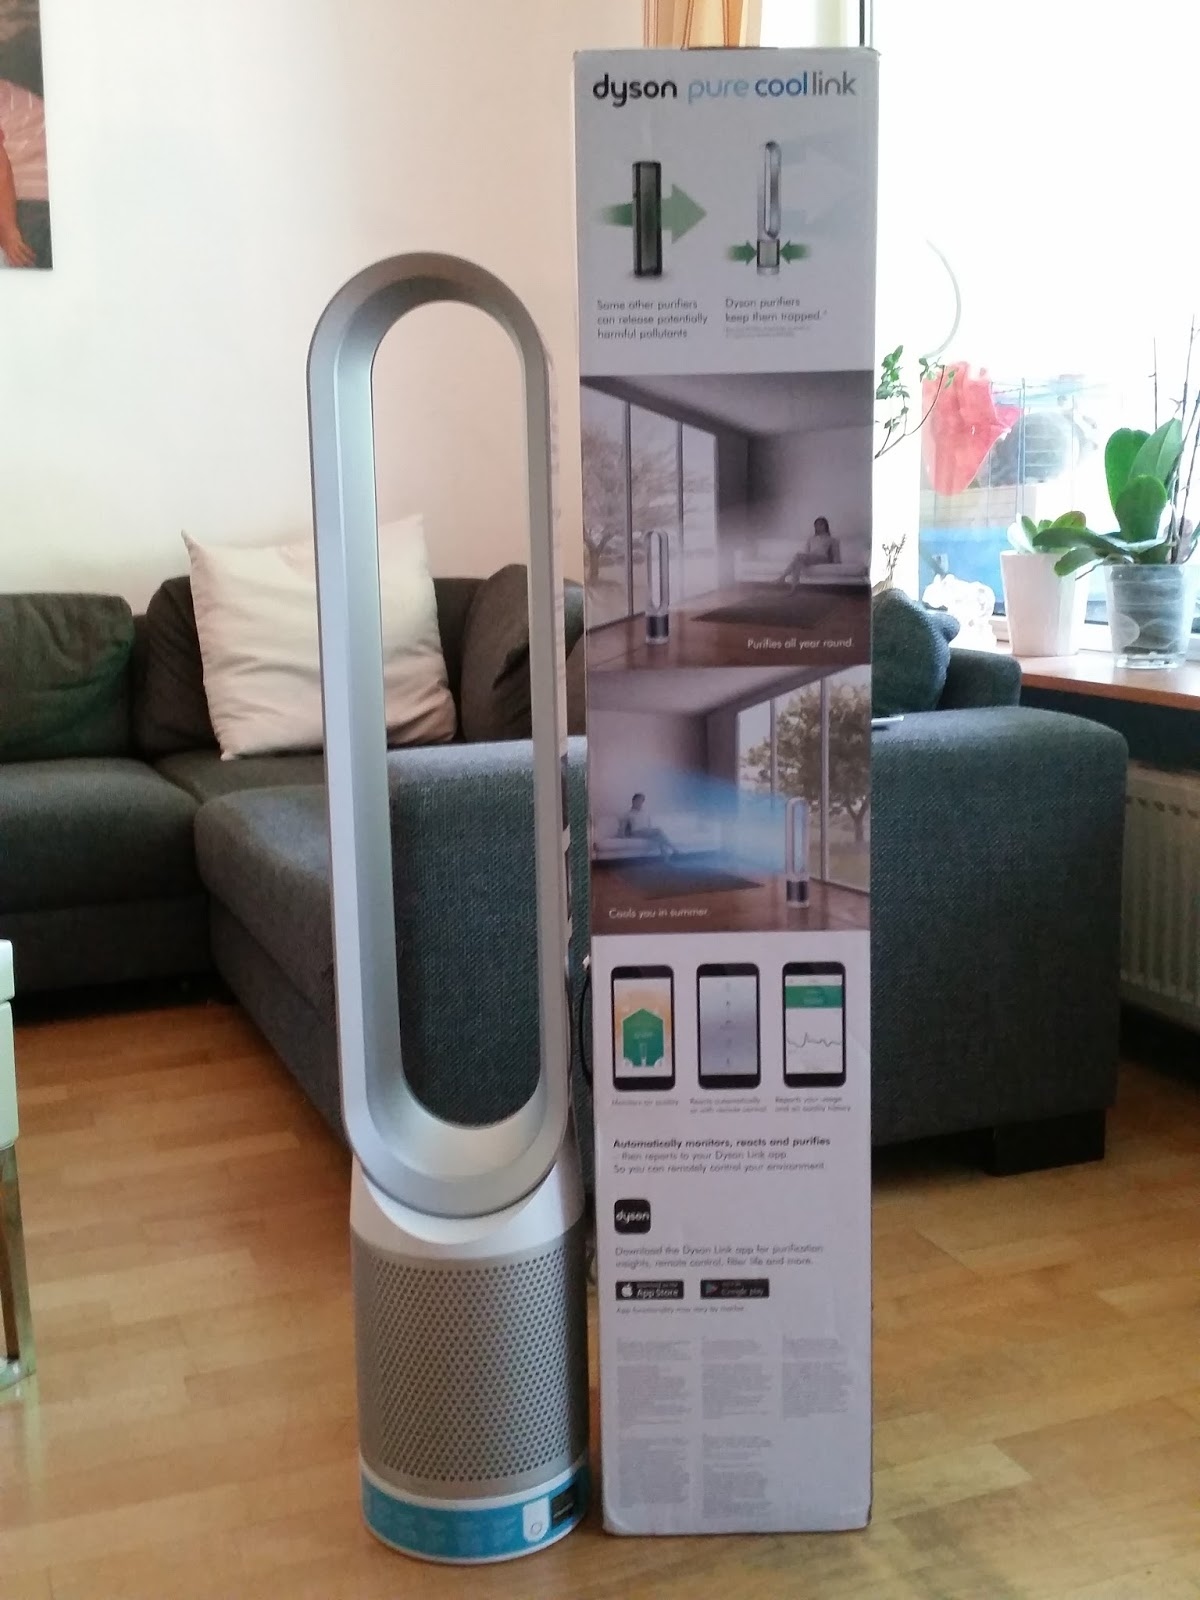 dyson pure cool link tower im test luftreinigung und k hlung in einem wirksam gegen pollen und. Black Bedroom Furniture Sets. Home Design Ideas